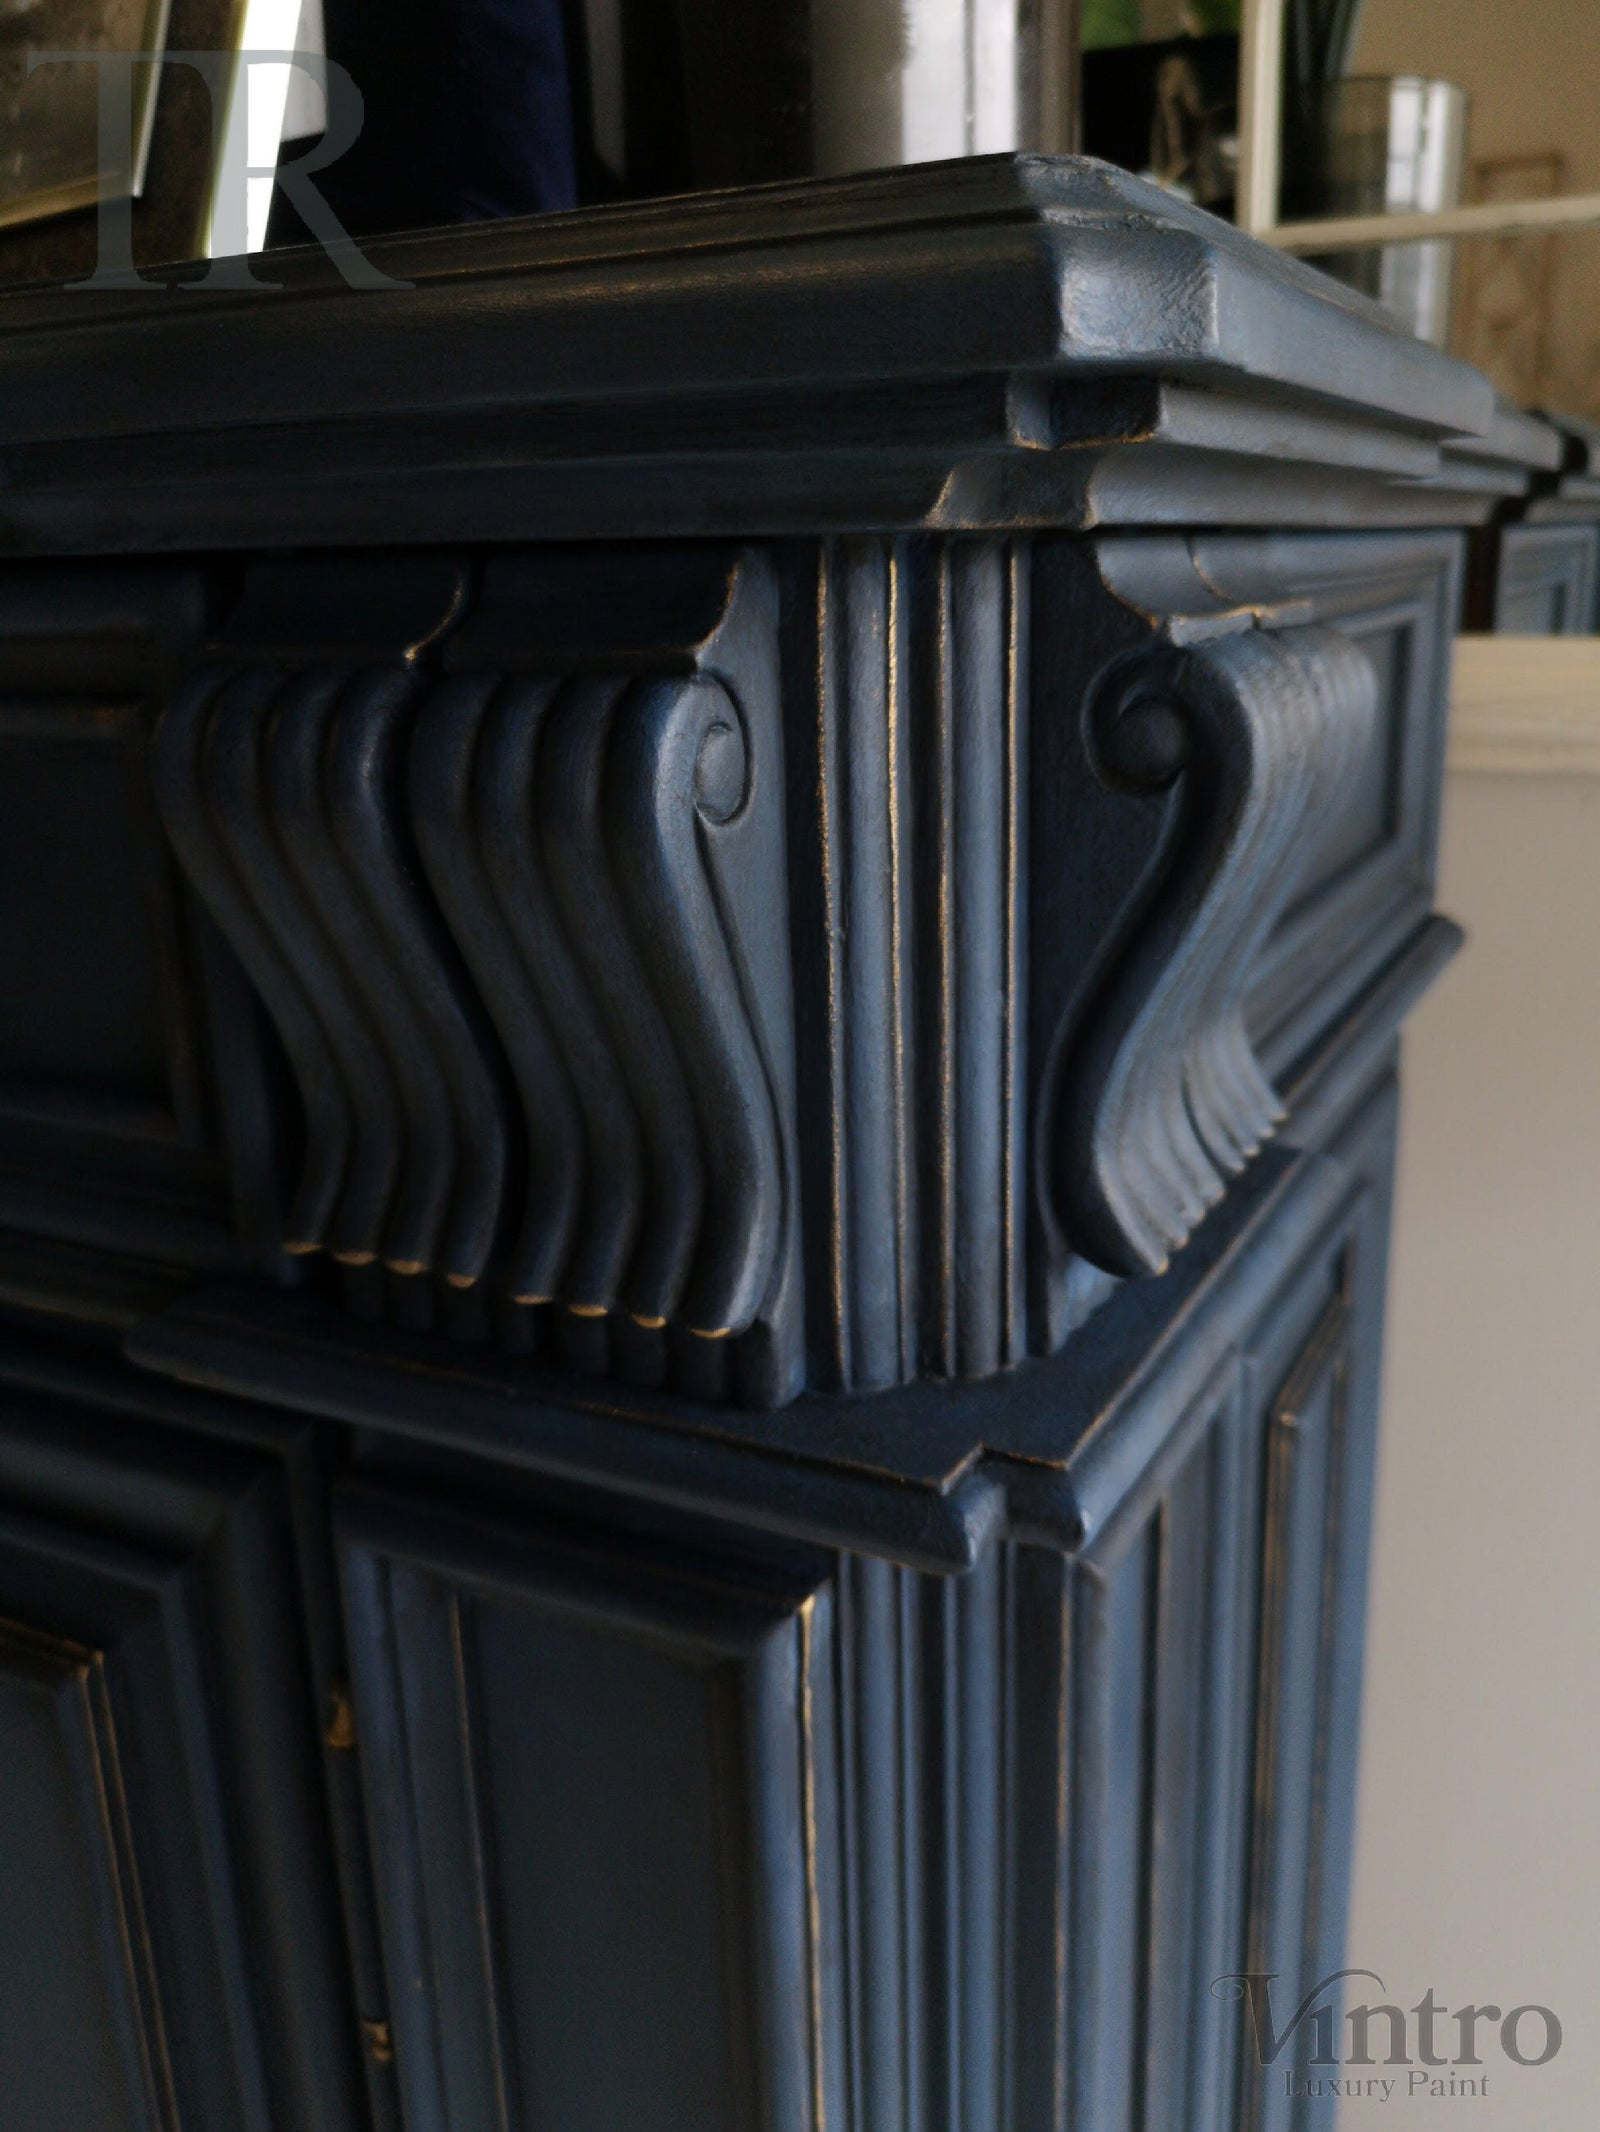 Commissioned Sideboard in Dark Vintro Navy Blue